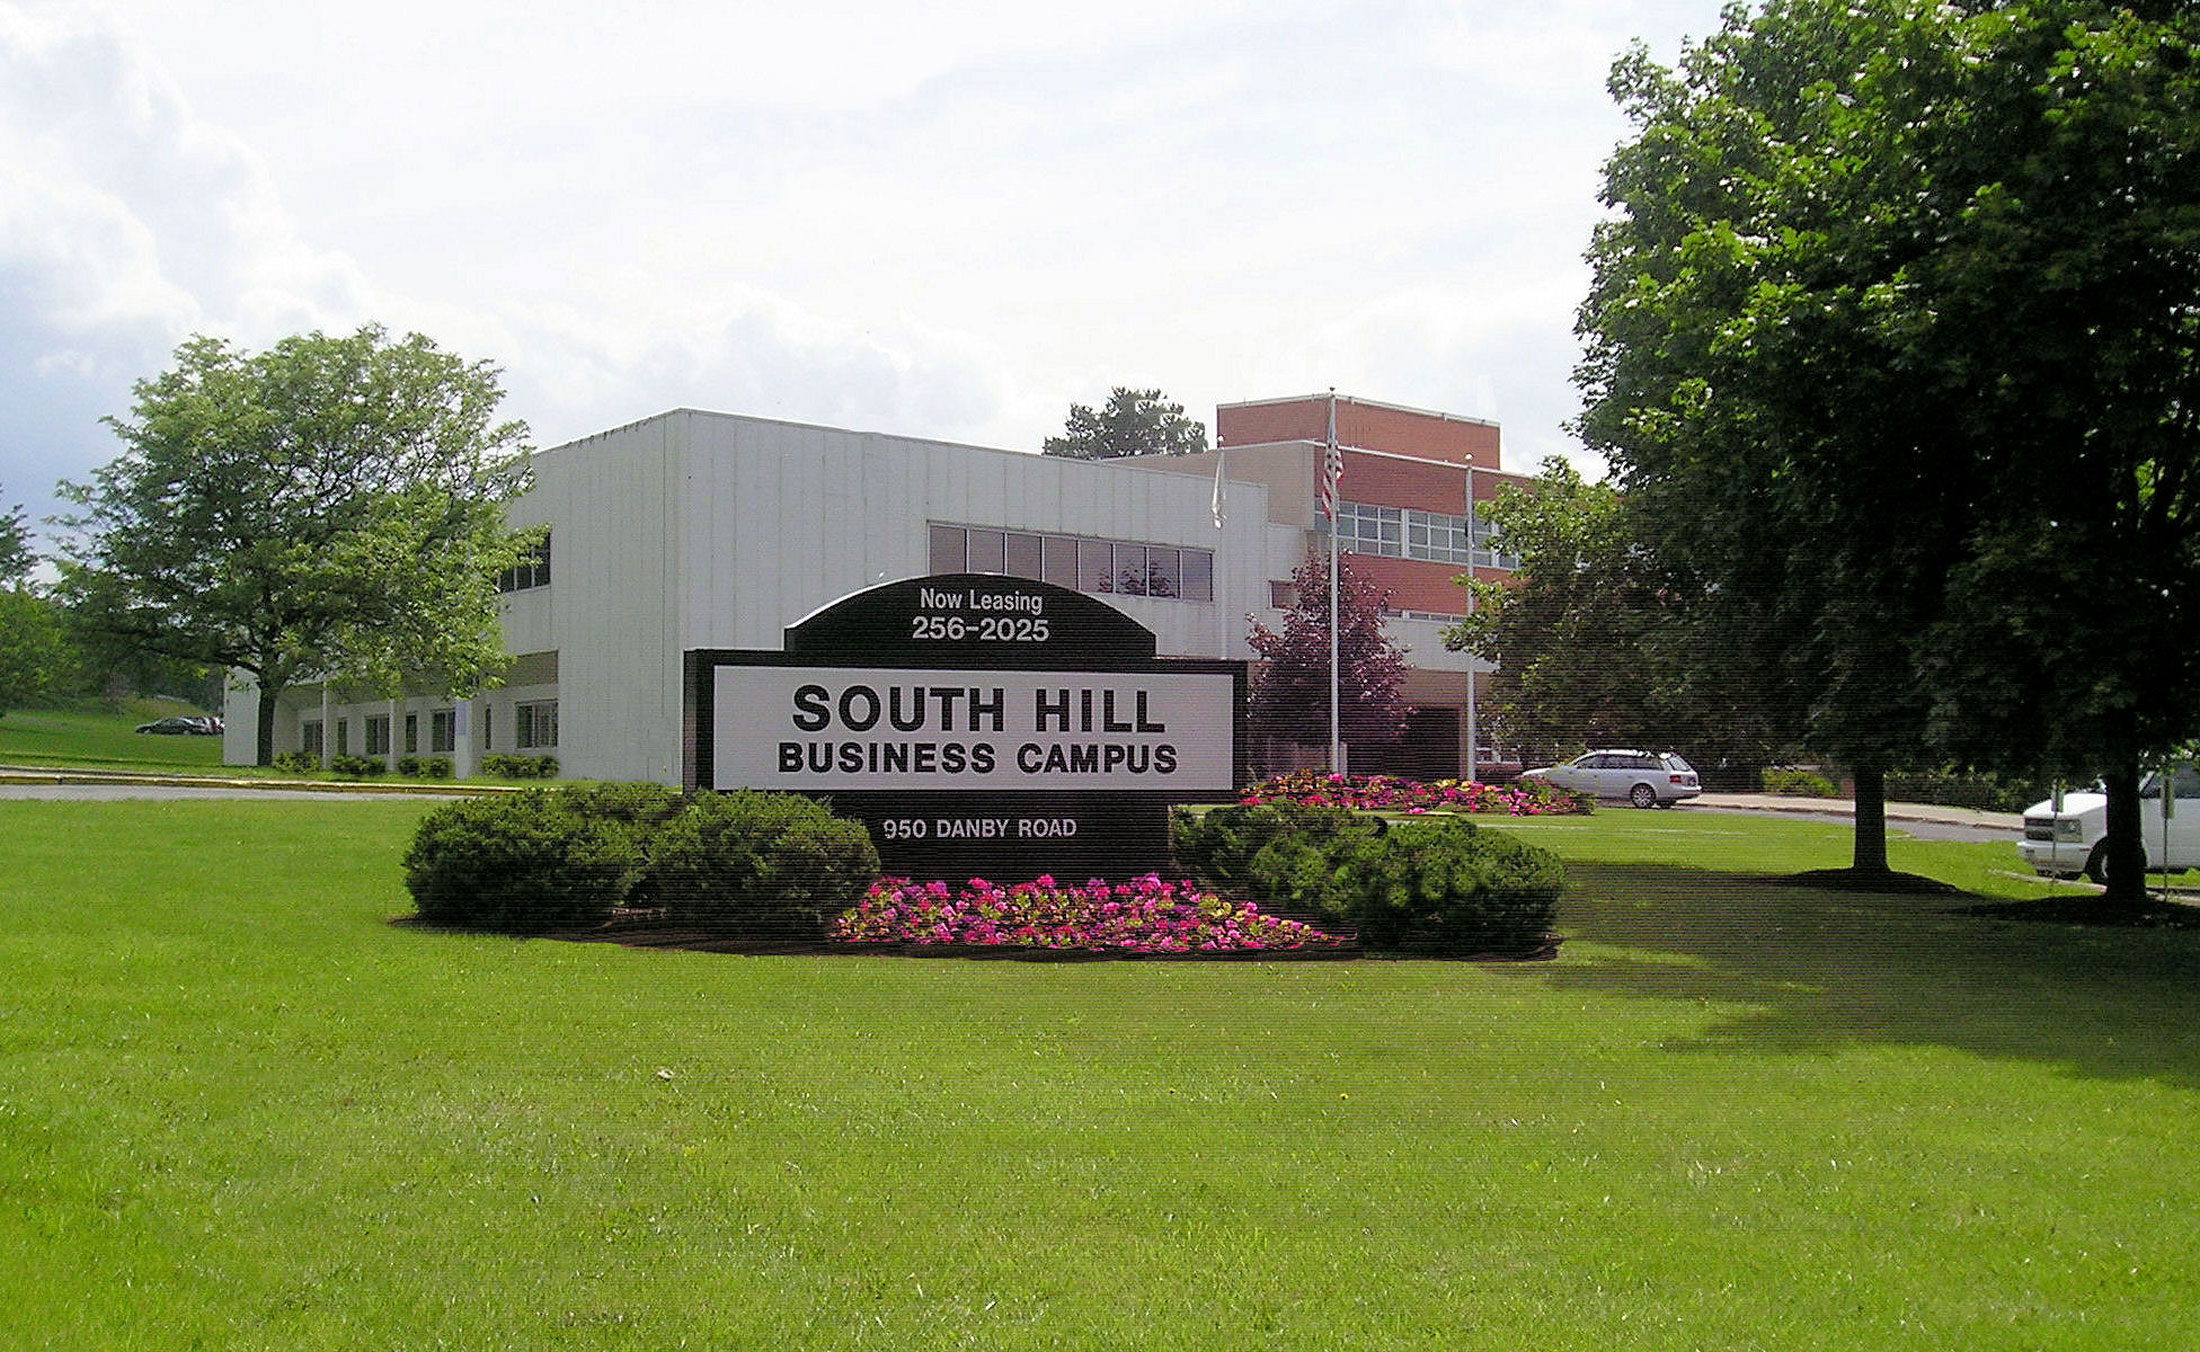 South Hill Business Campus   Ithaca's Premiere Business Location